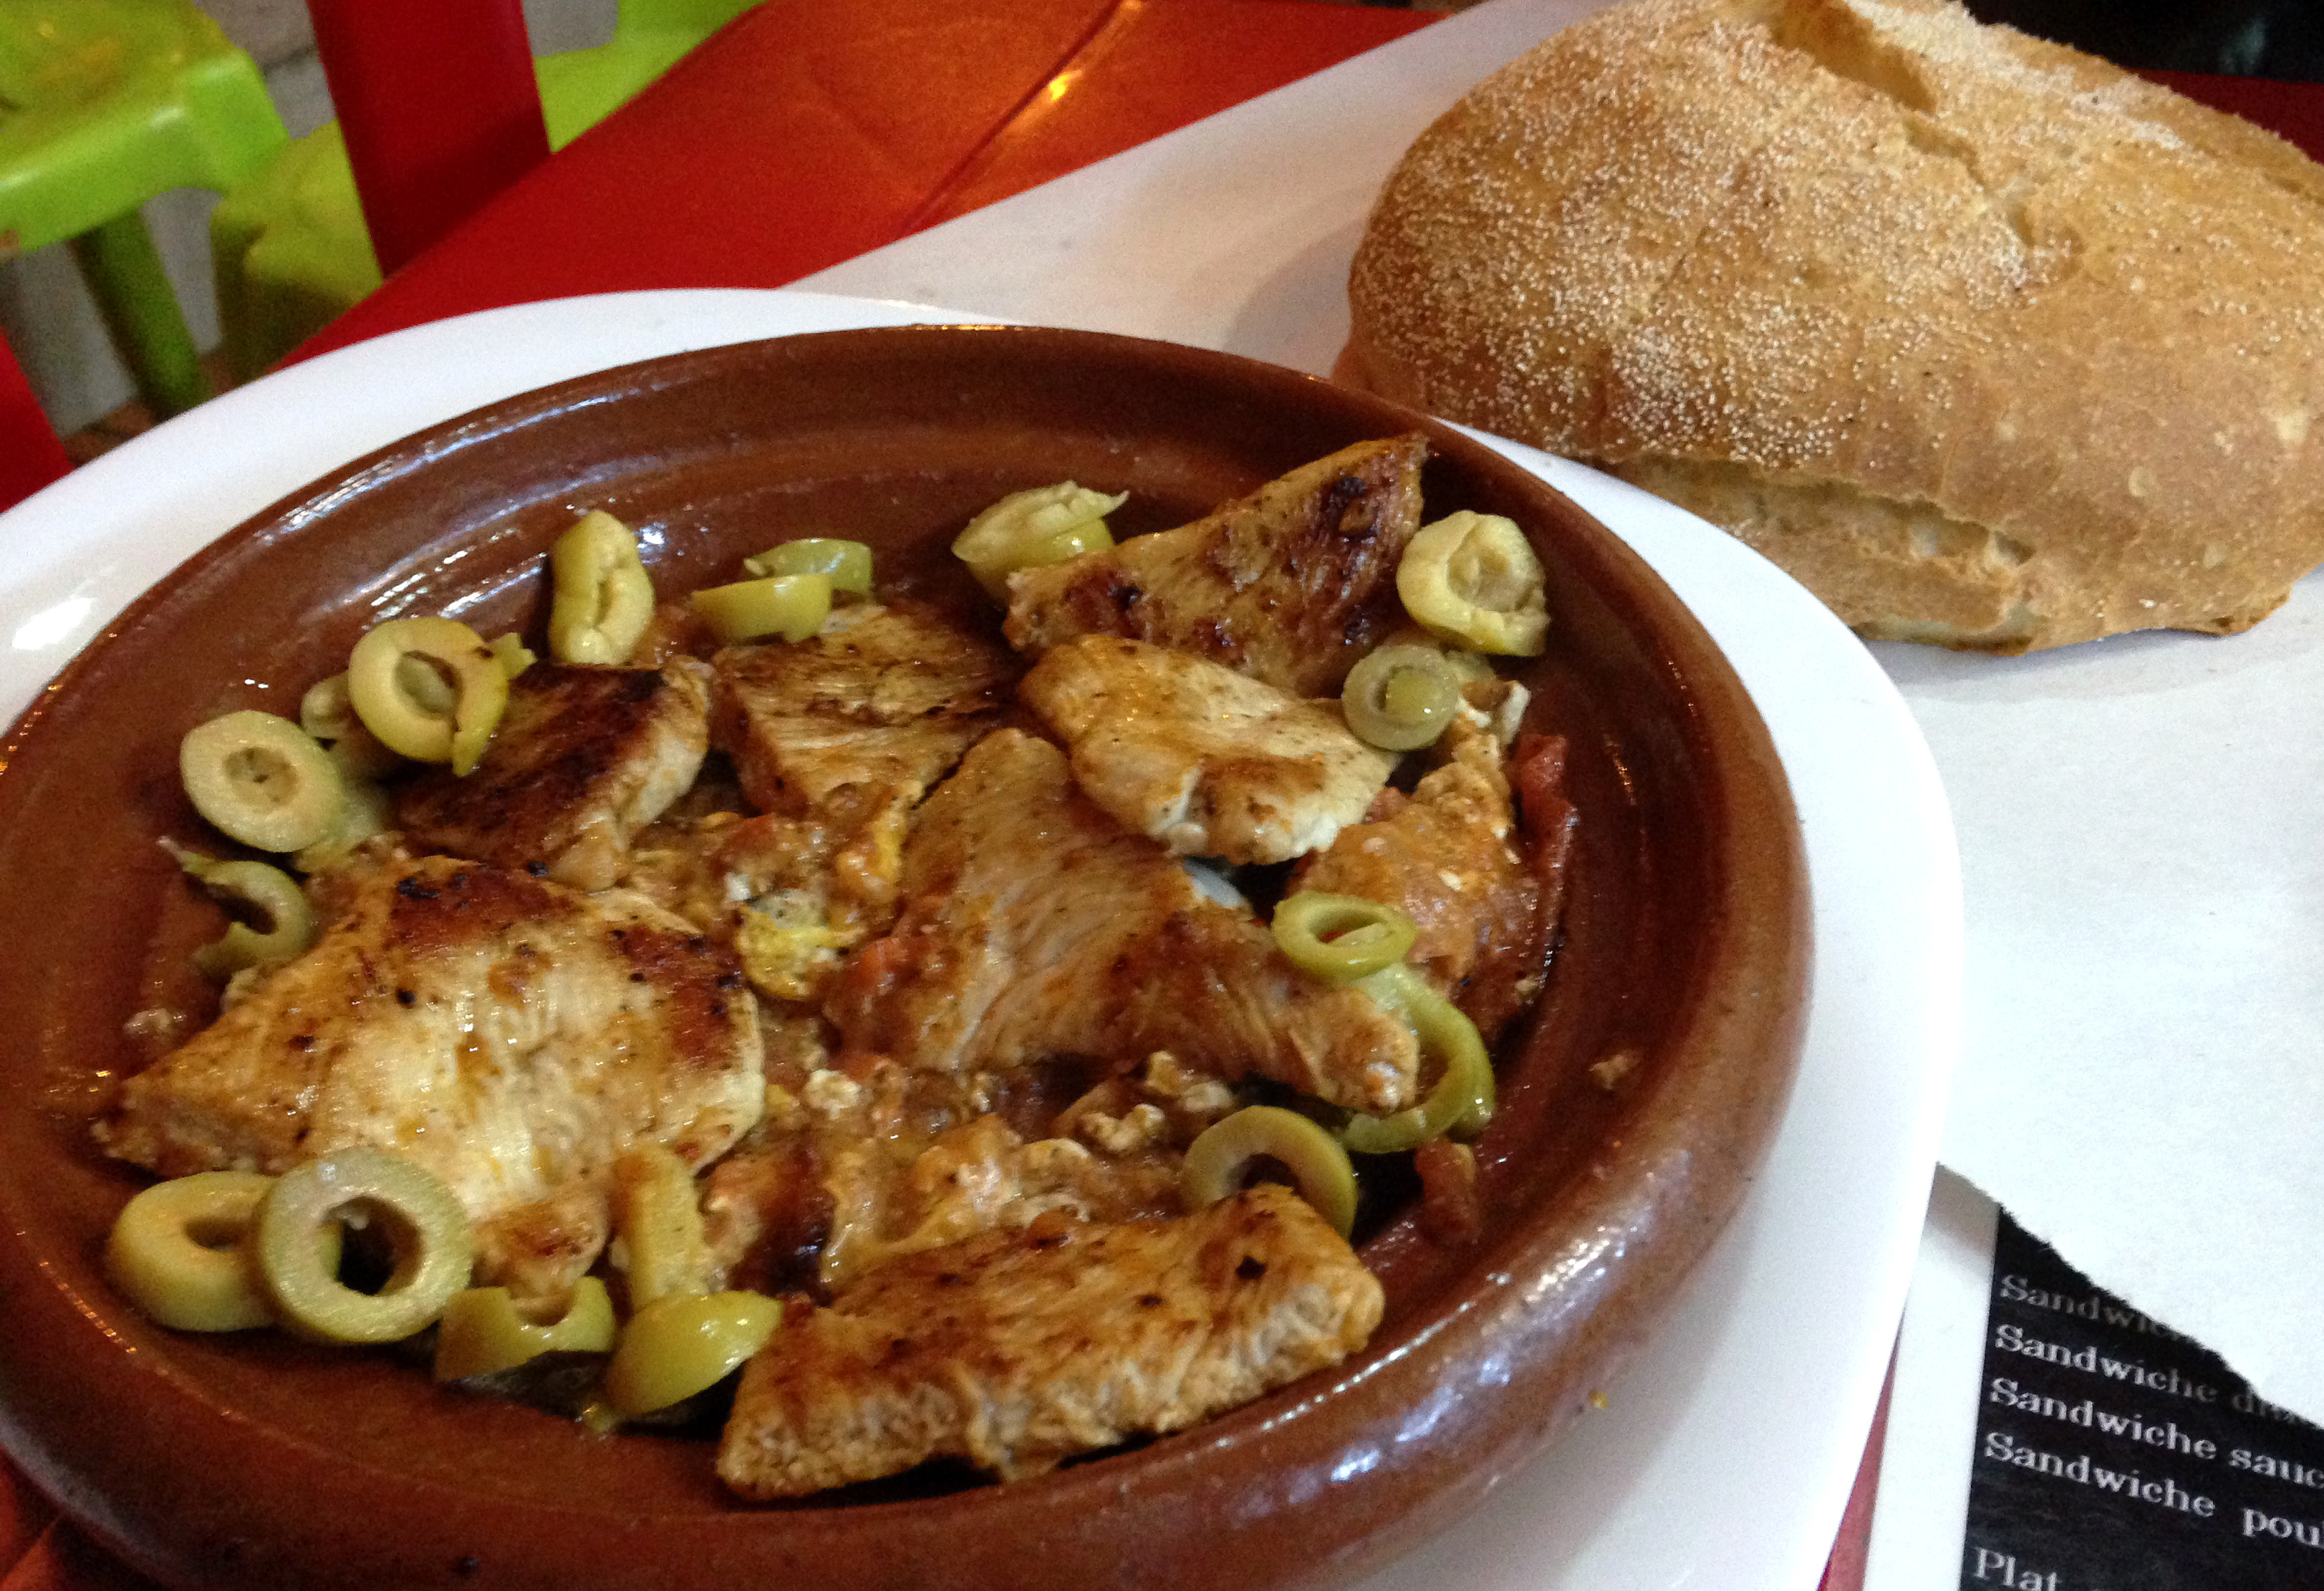 Eat Tajine de Pollo - One of the Awesome Things to Do in Morocco